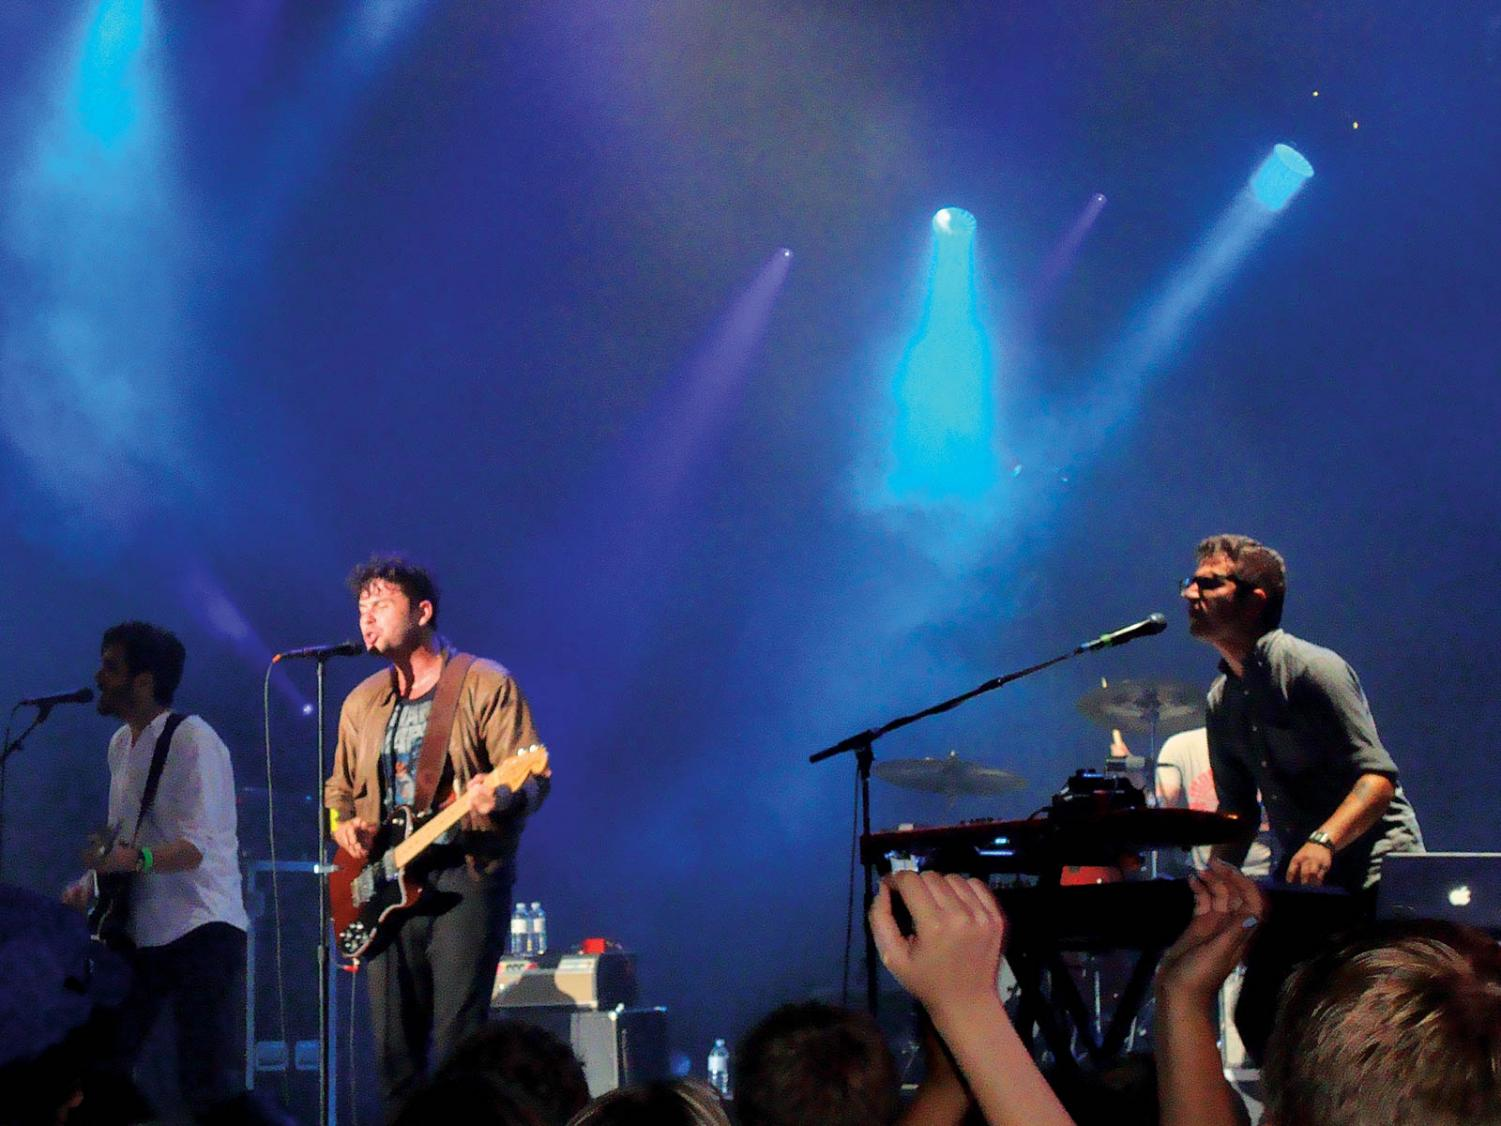 Arkells's new album 'Rally Cry' comes out on Oct. 19.